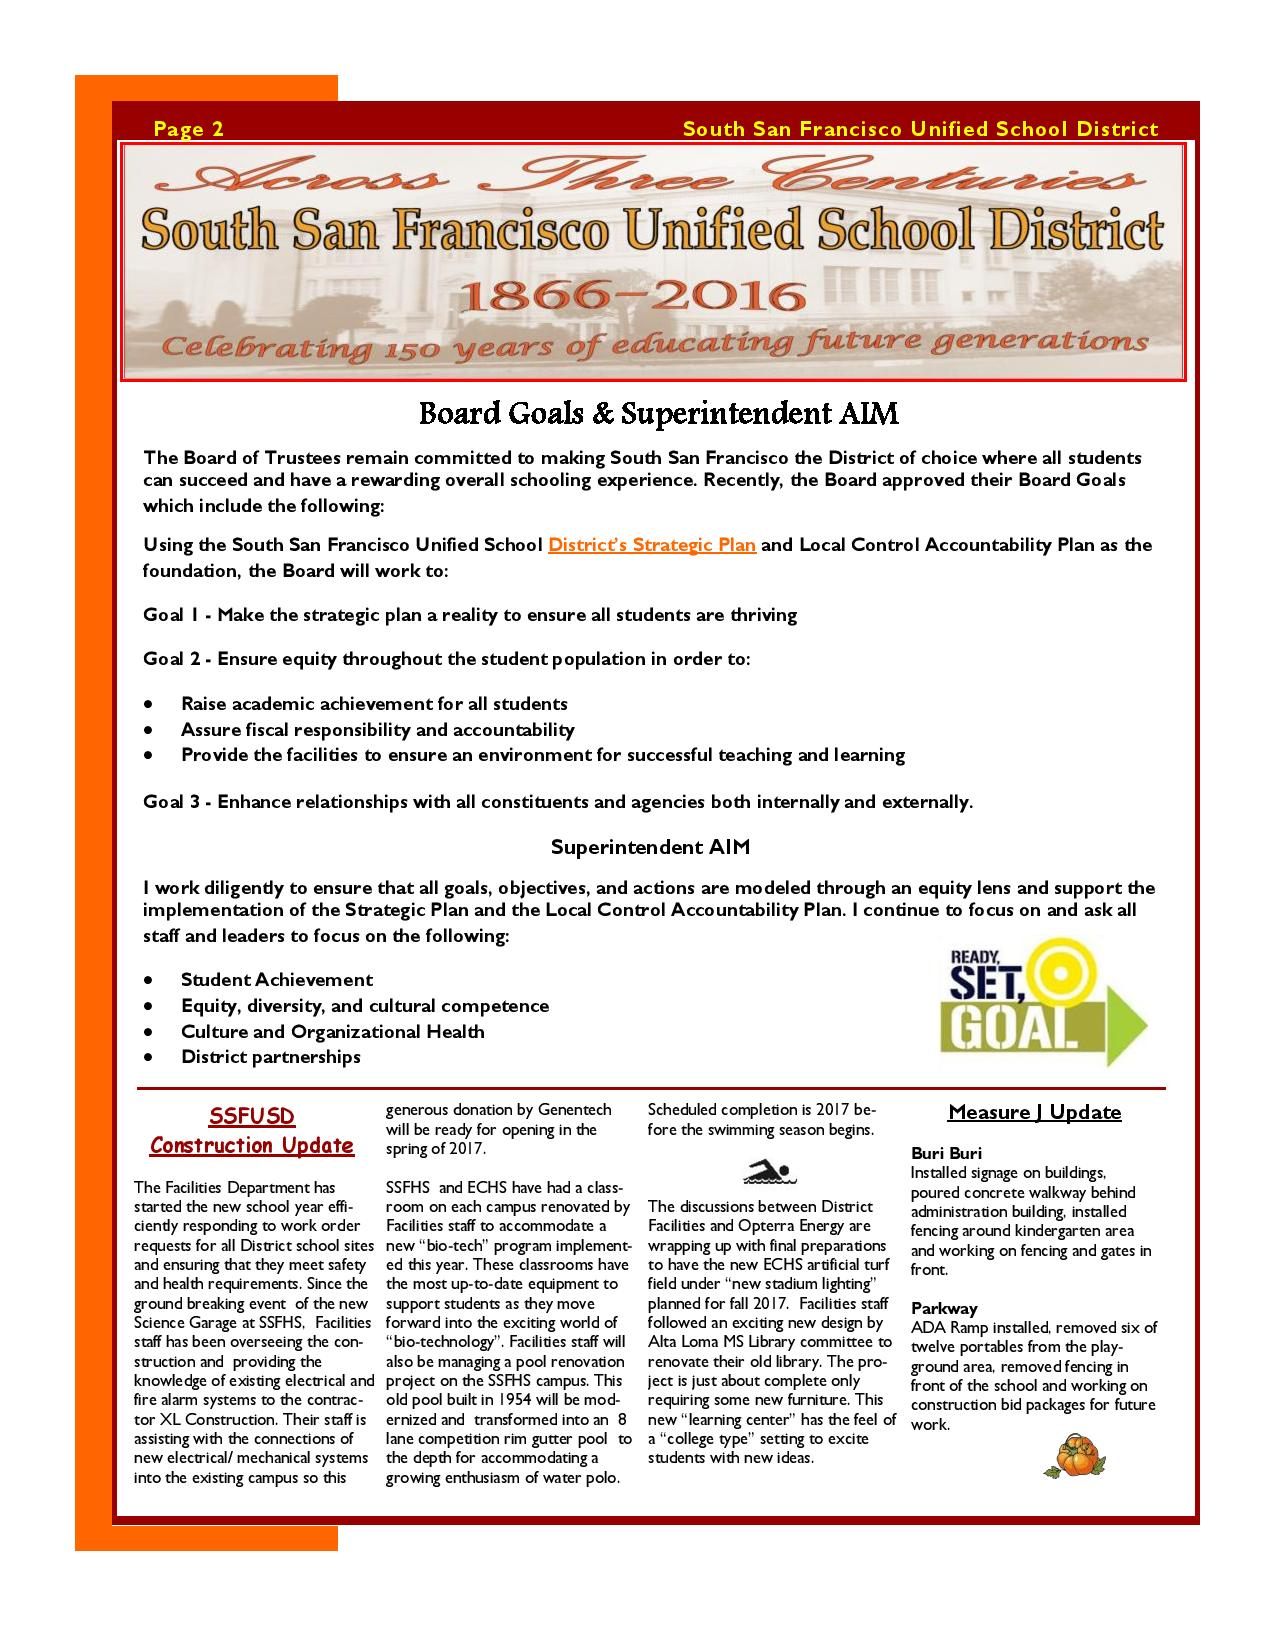 district-newsletter-fall-2016-online-page-002